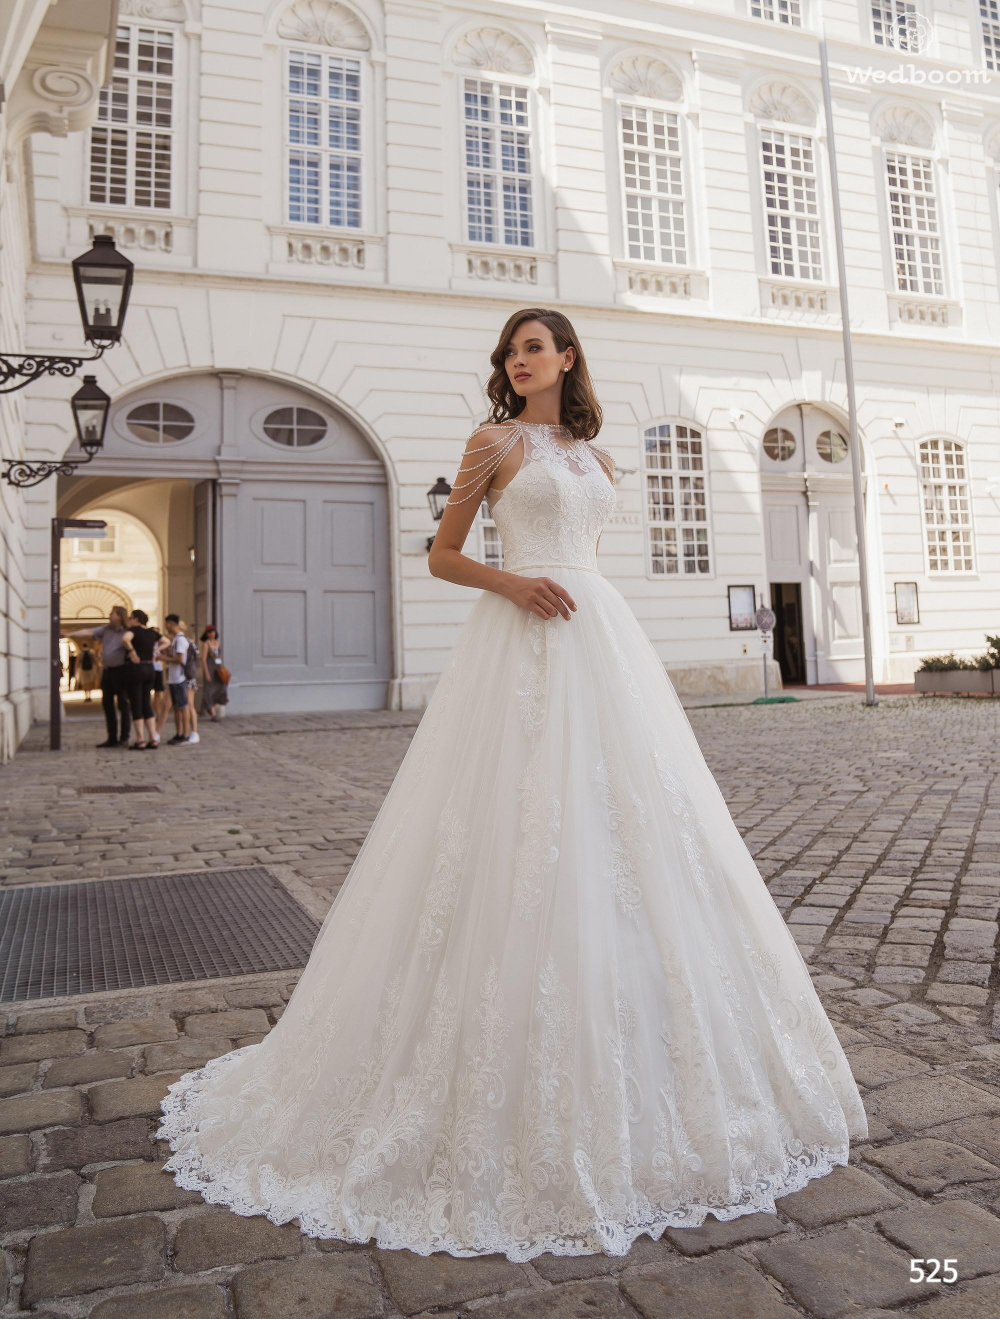 Wedboom Eu Online Store In 2020 Halter Wedding Dress Long Train Wedding Dress A Line Wedding Dress,Most Iconic Wedding Dresses Of All Time